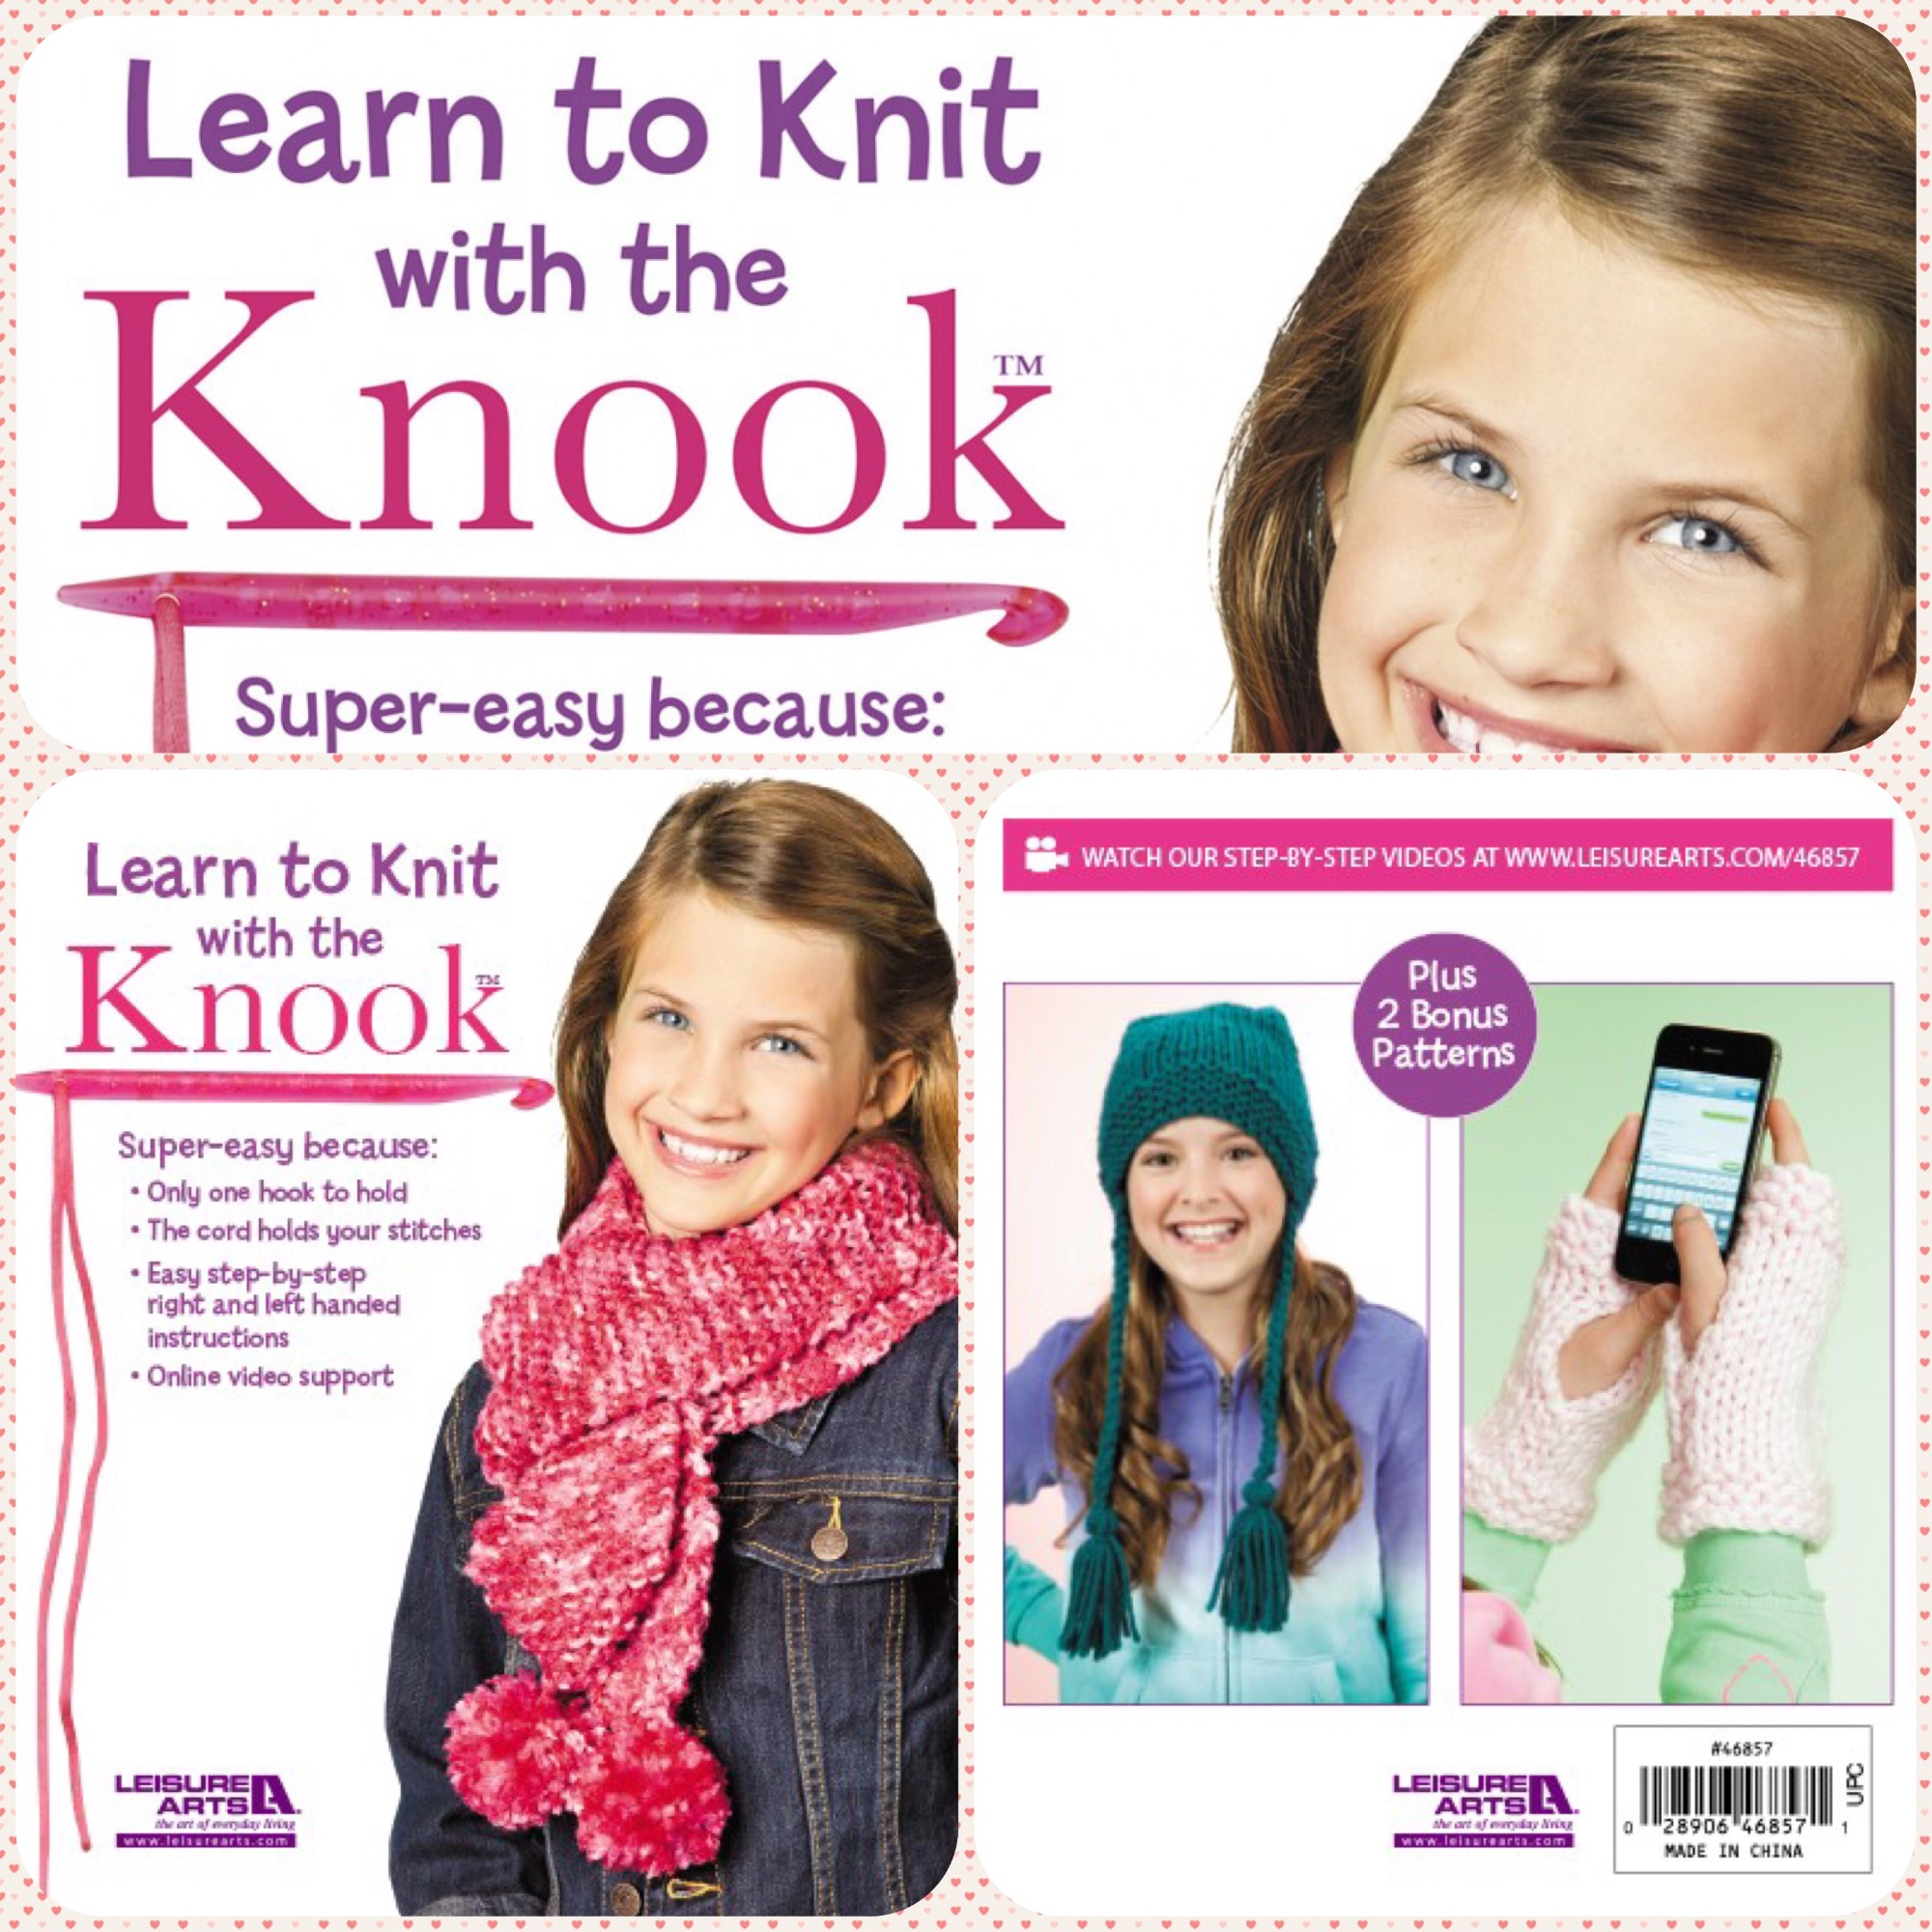 leisure arts learn to knit with the knook kit book